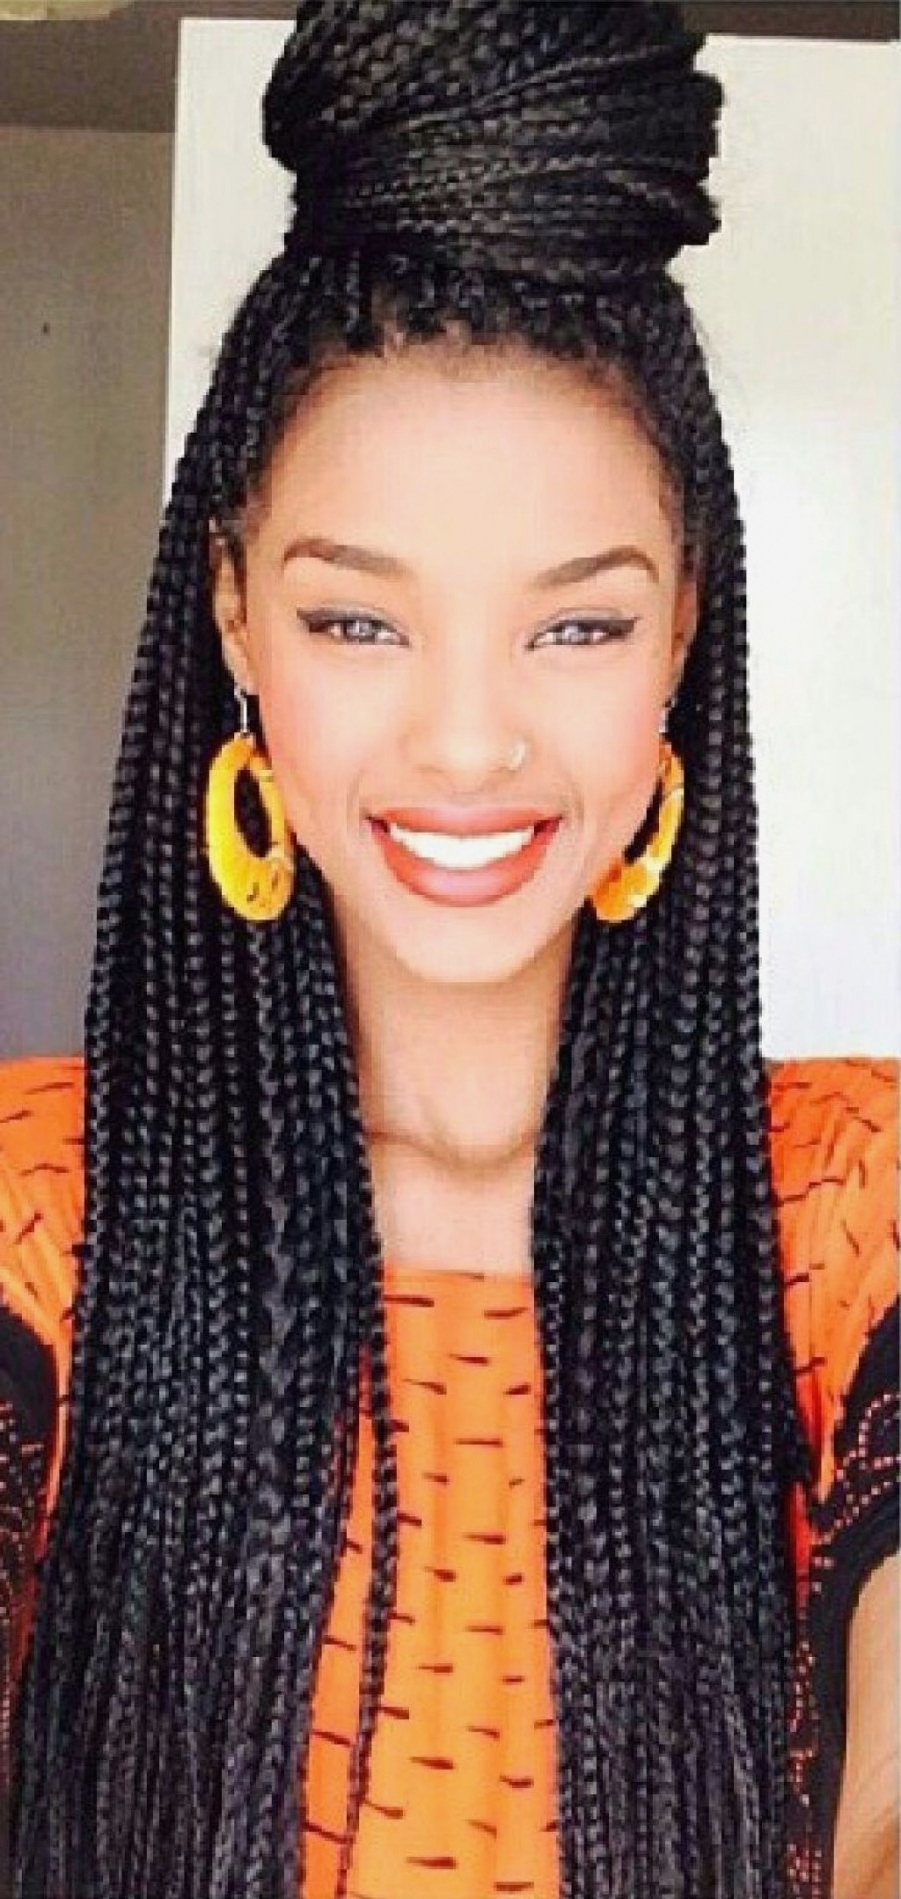 Braid Hairstyles : Awesome Kinky Twist Braids Hairstyles Download For Most Recent Kinky Braid Hairstyles (View 5 of 15)